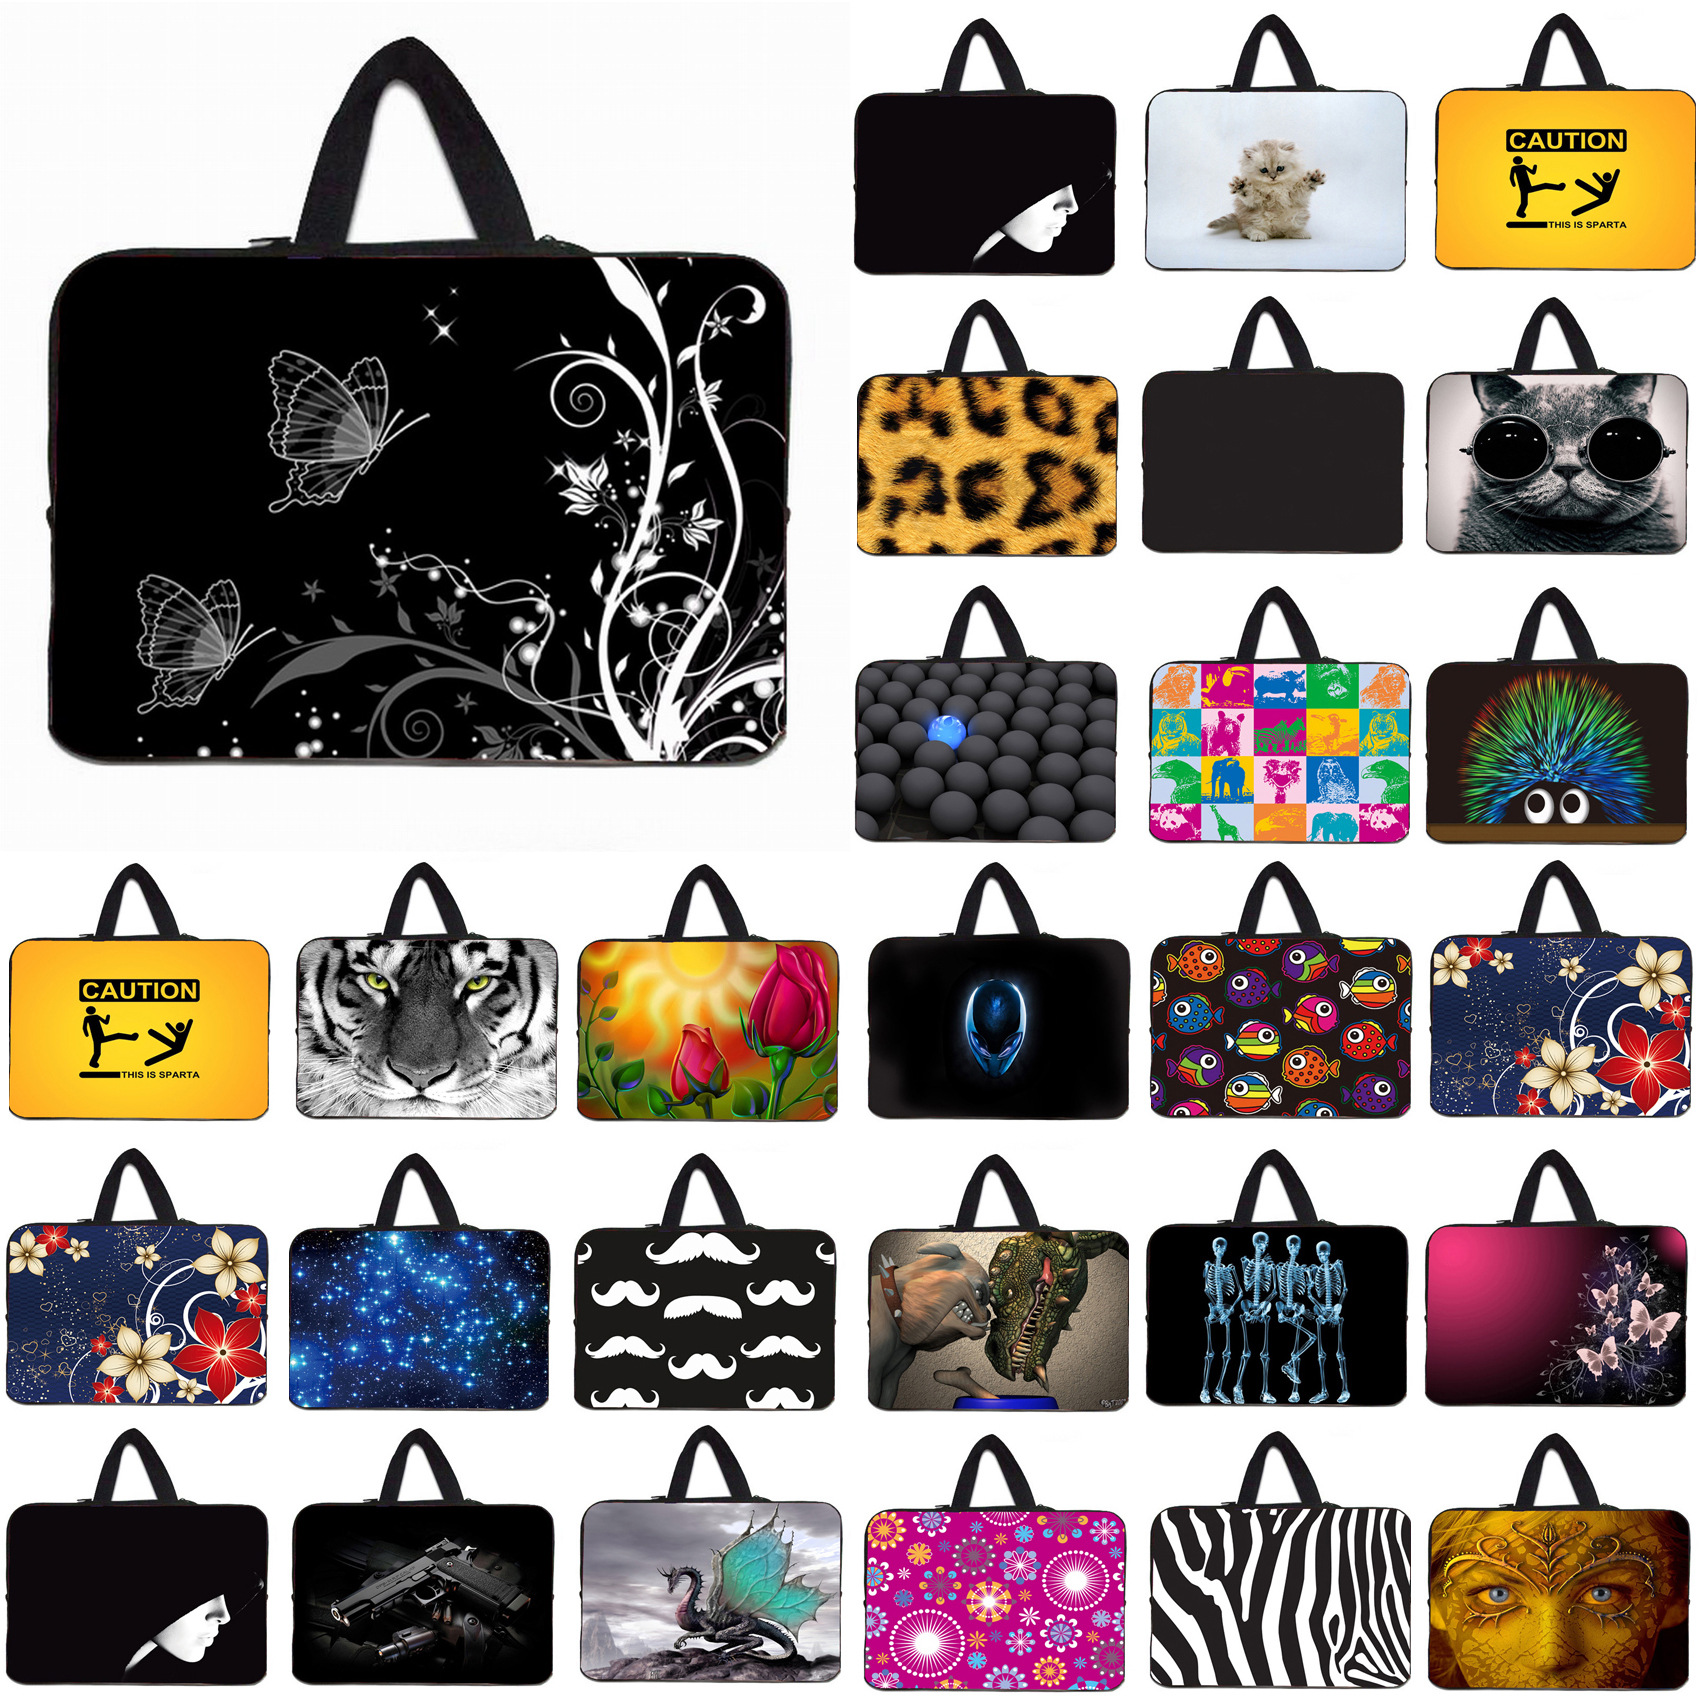 Nylon Protective Slim Bags For Women 10 12 Tablet 10.1 Netbook Inner Bags Cases Cover 13 13.3 14 15 16 17 Laptop Notebook Bags